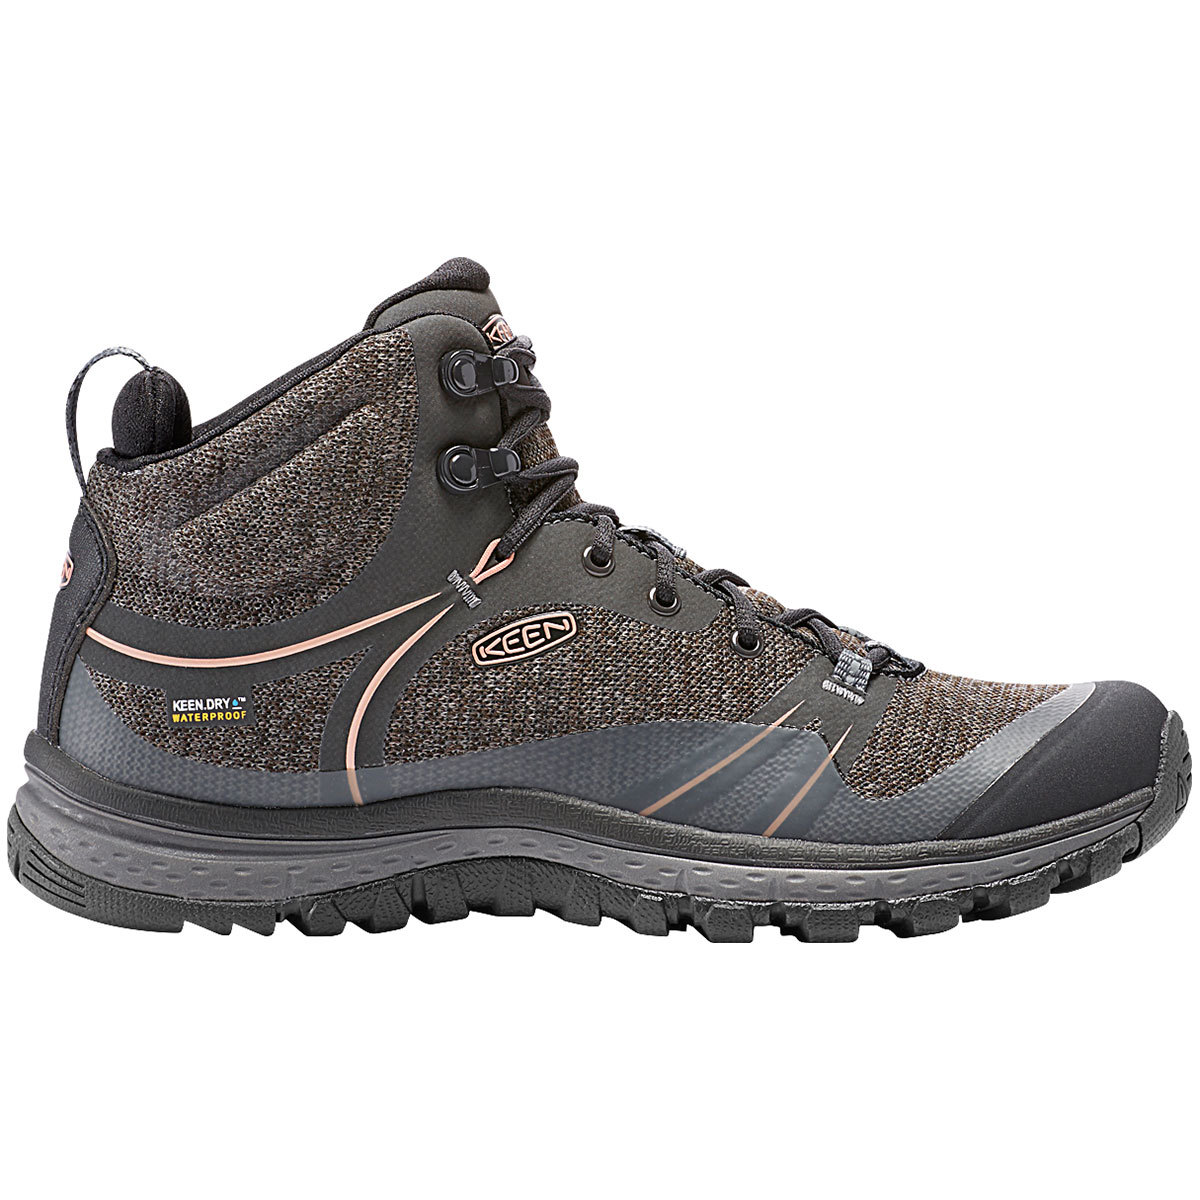 Keen Women's Terradora Mid Waterproof Hiking Boots, Raven - Black, 10